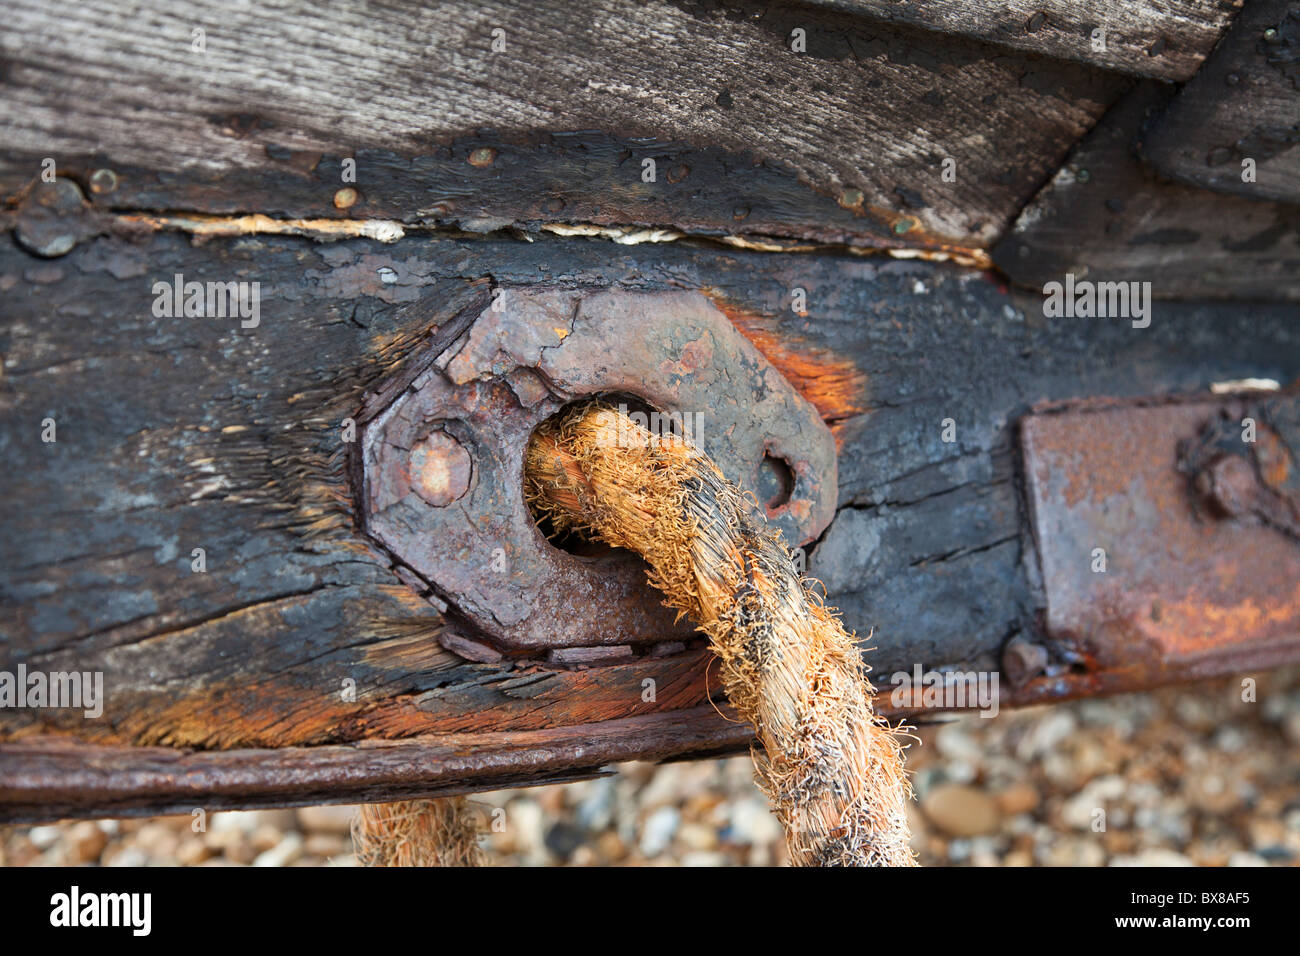 Rope attached to boat keel - Stock Image